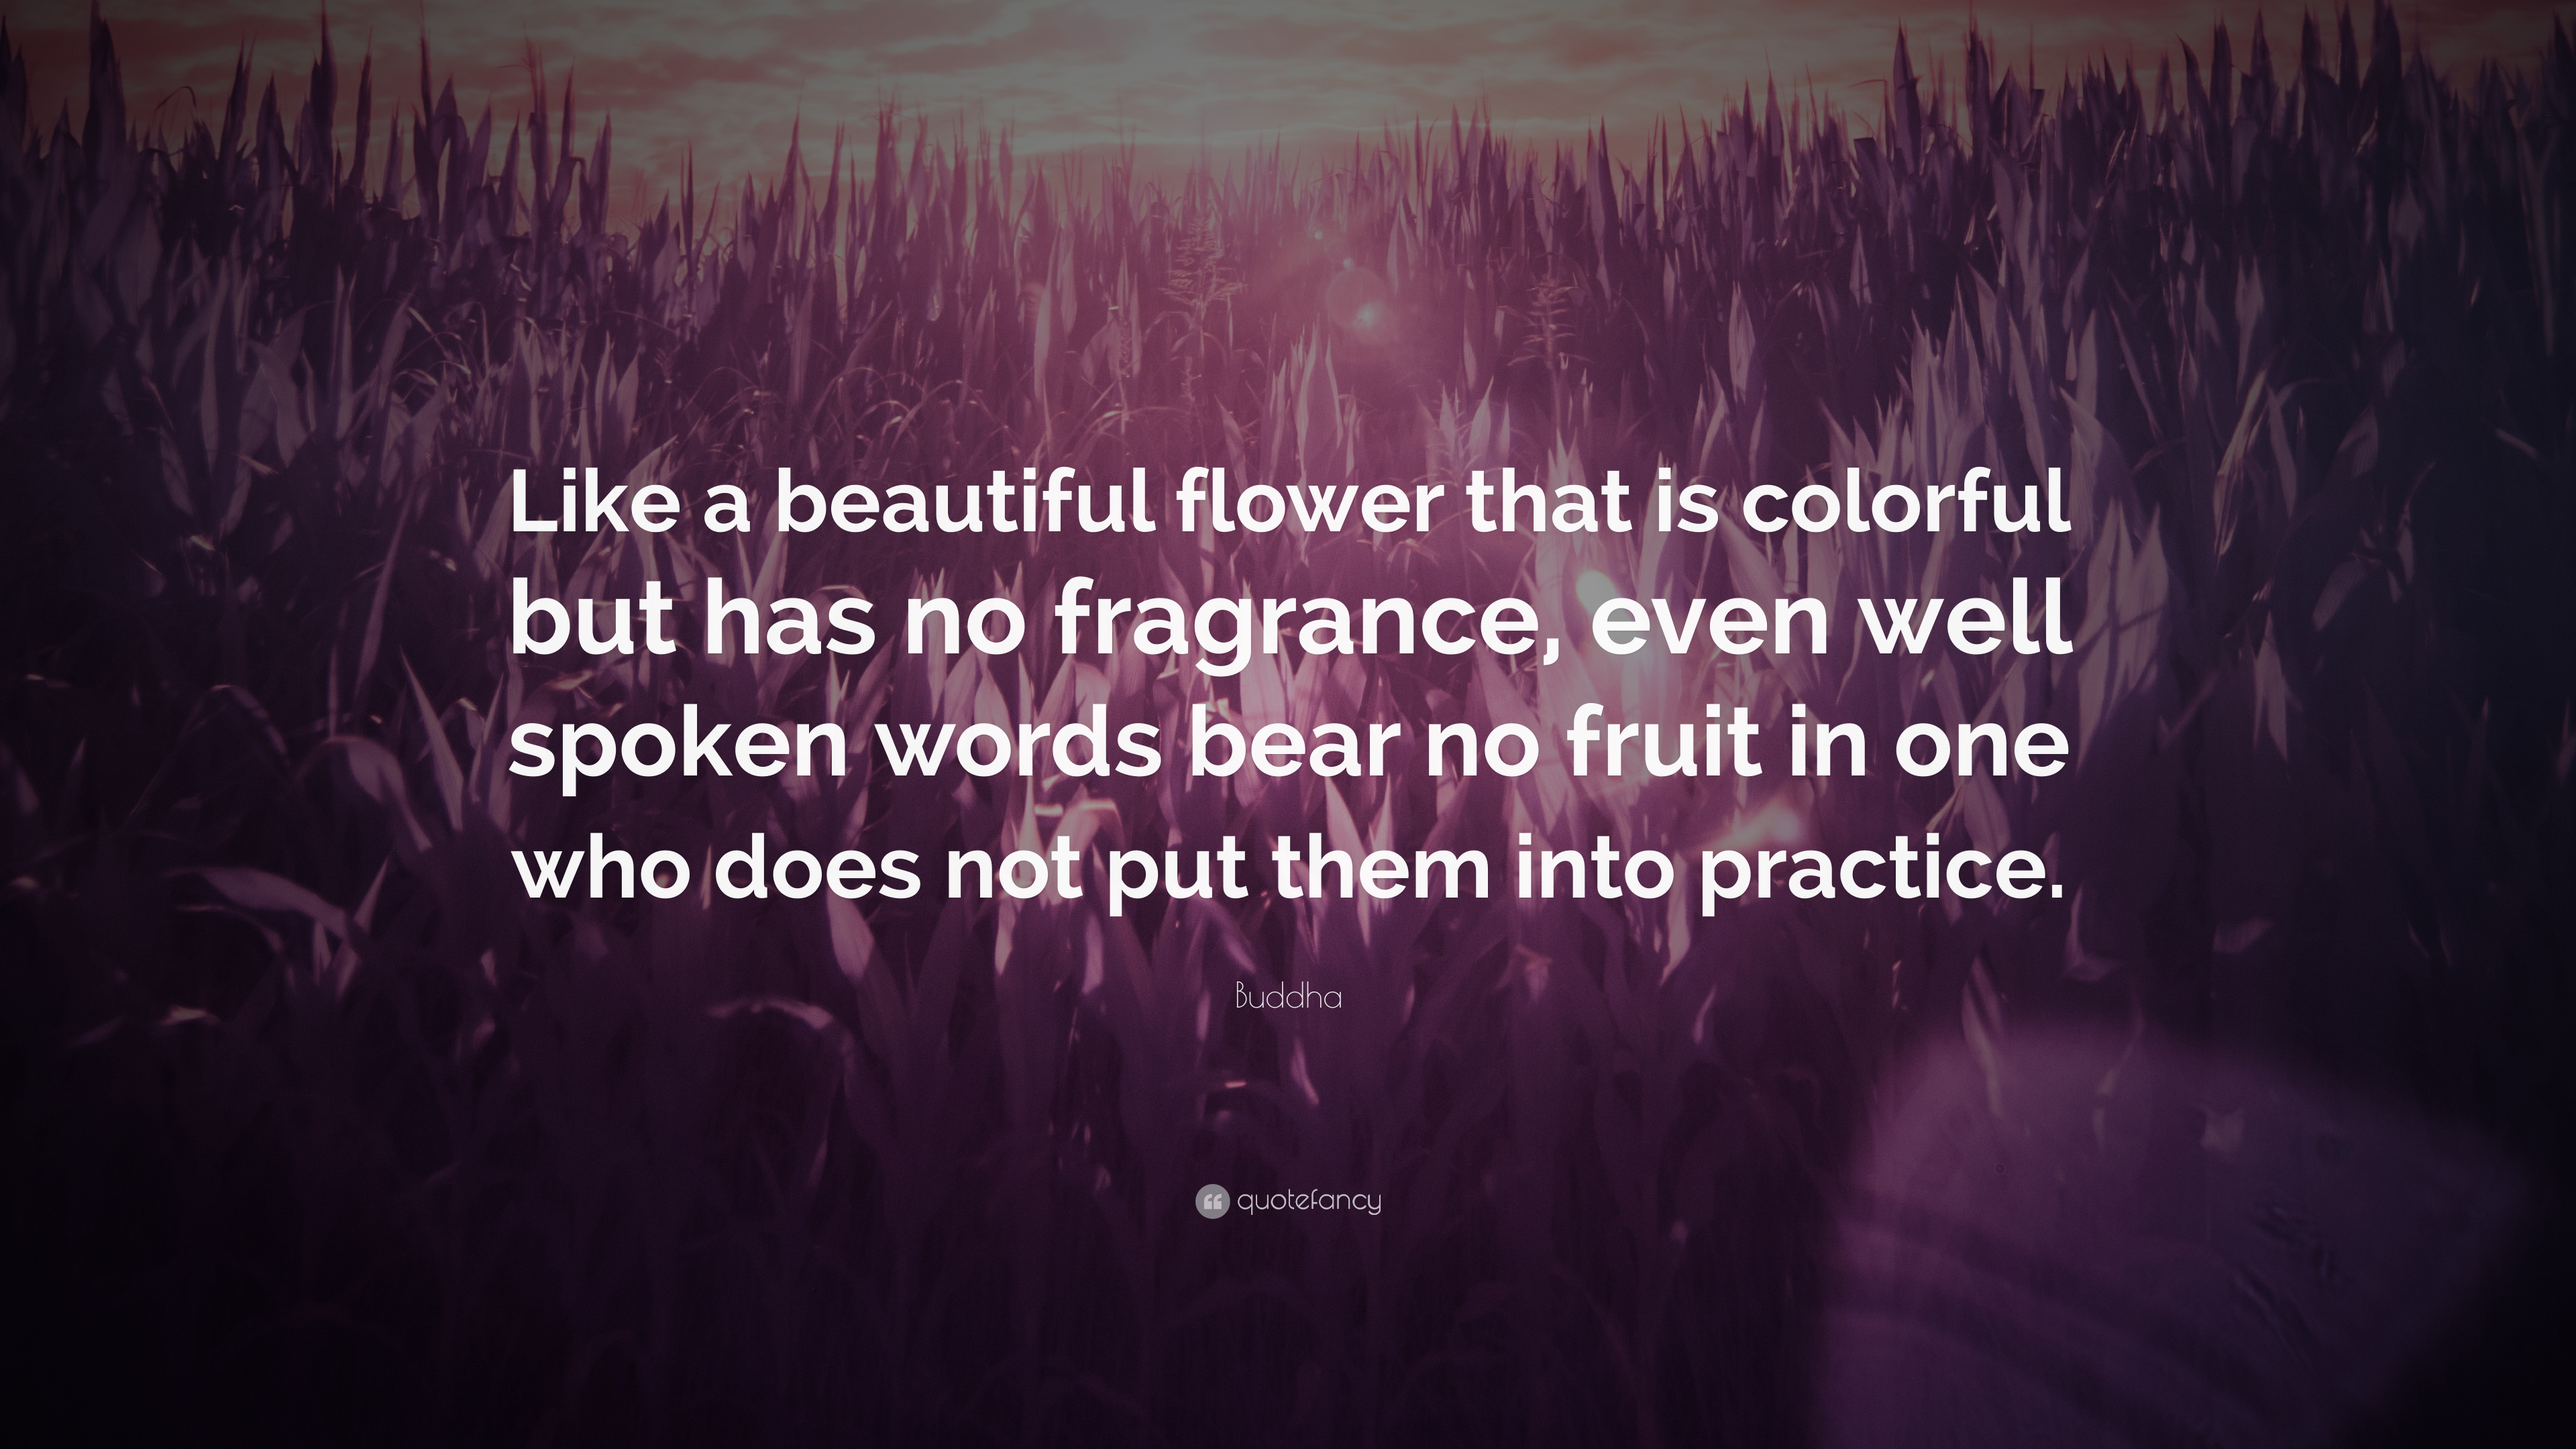 Buddhist Quotes 40 Wallpapers Quotefancy